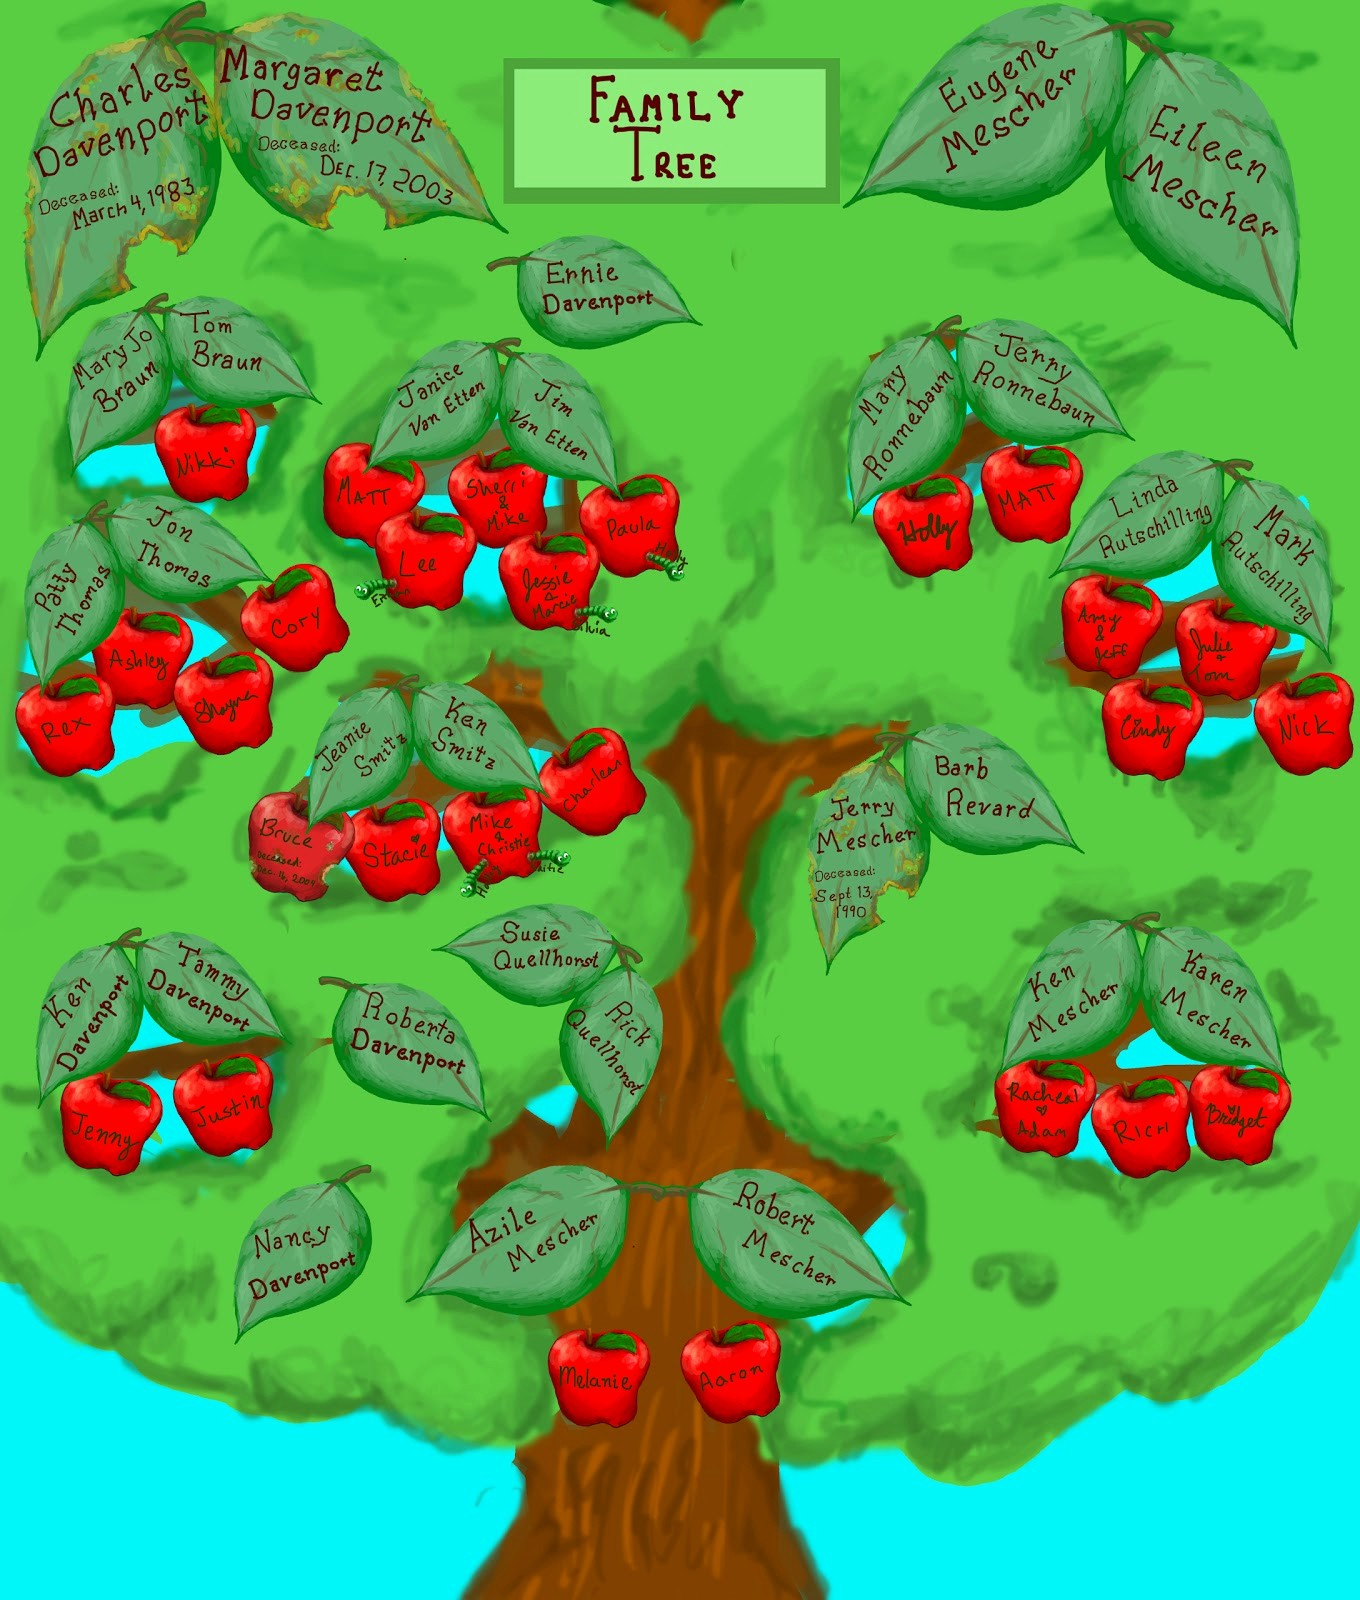 Family Tree Template for Mac Best Of Melanie S Mescher Family Tree